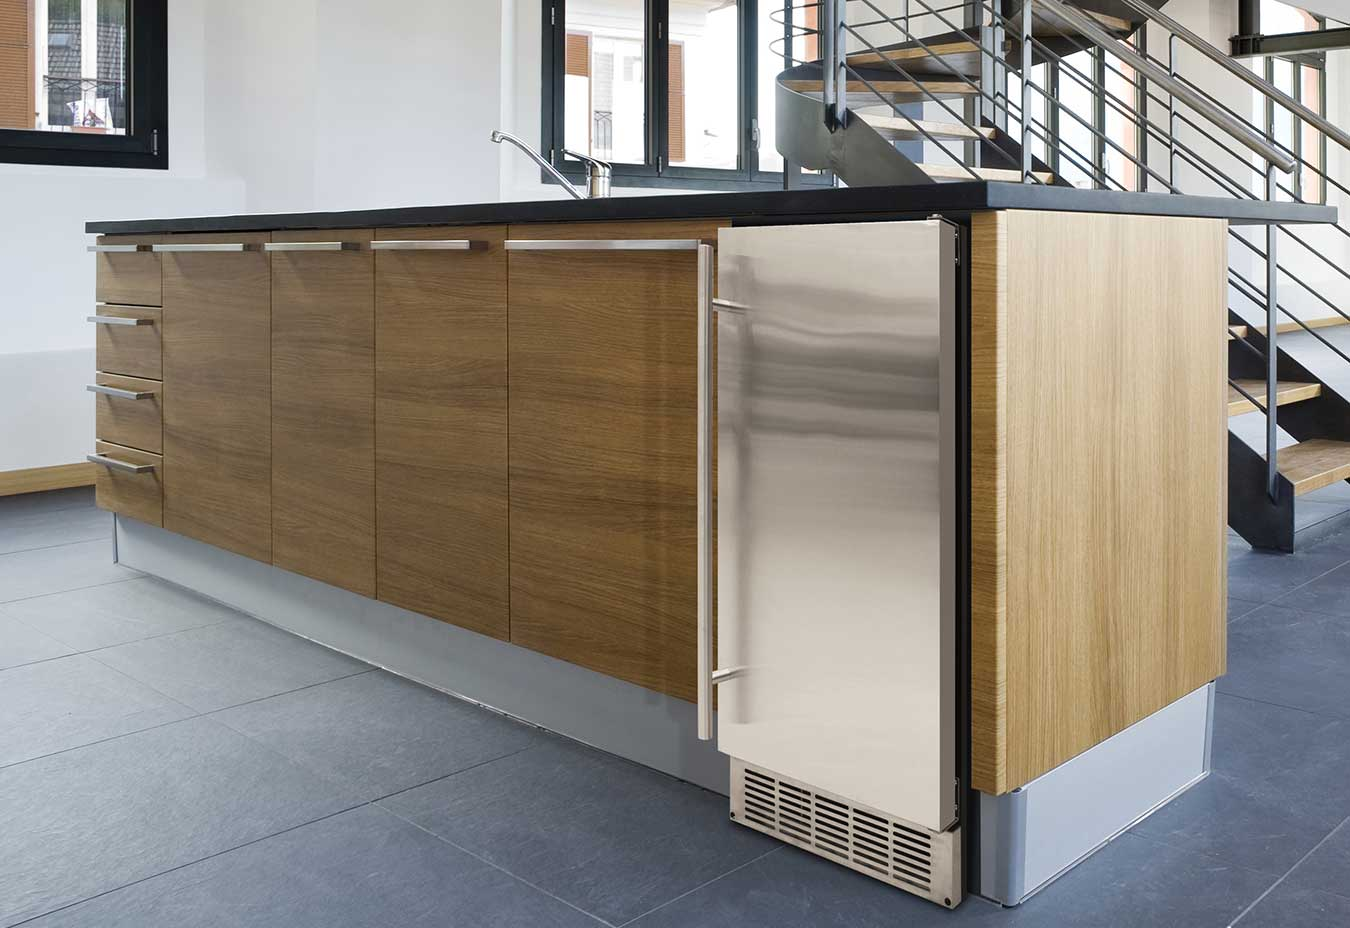 stainless ice maker in wood cabinetry